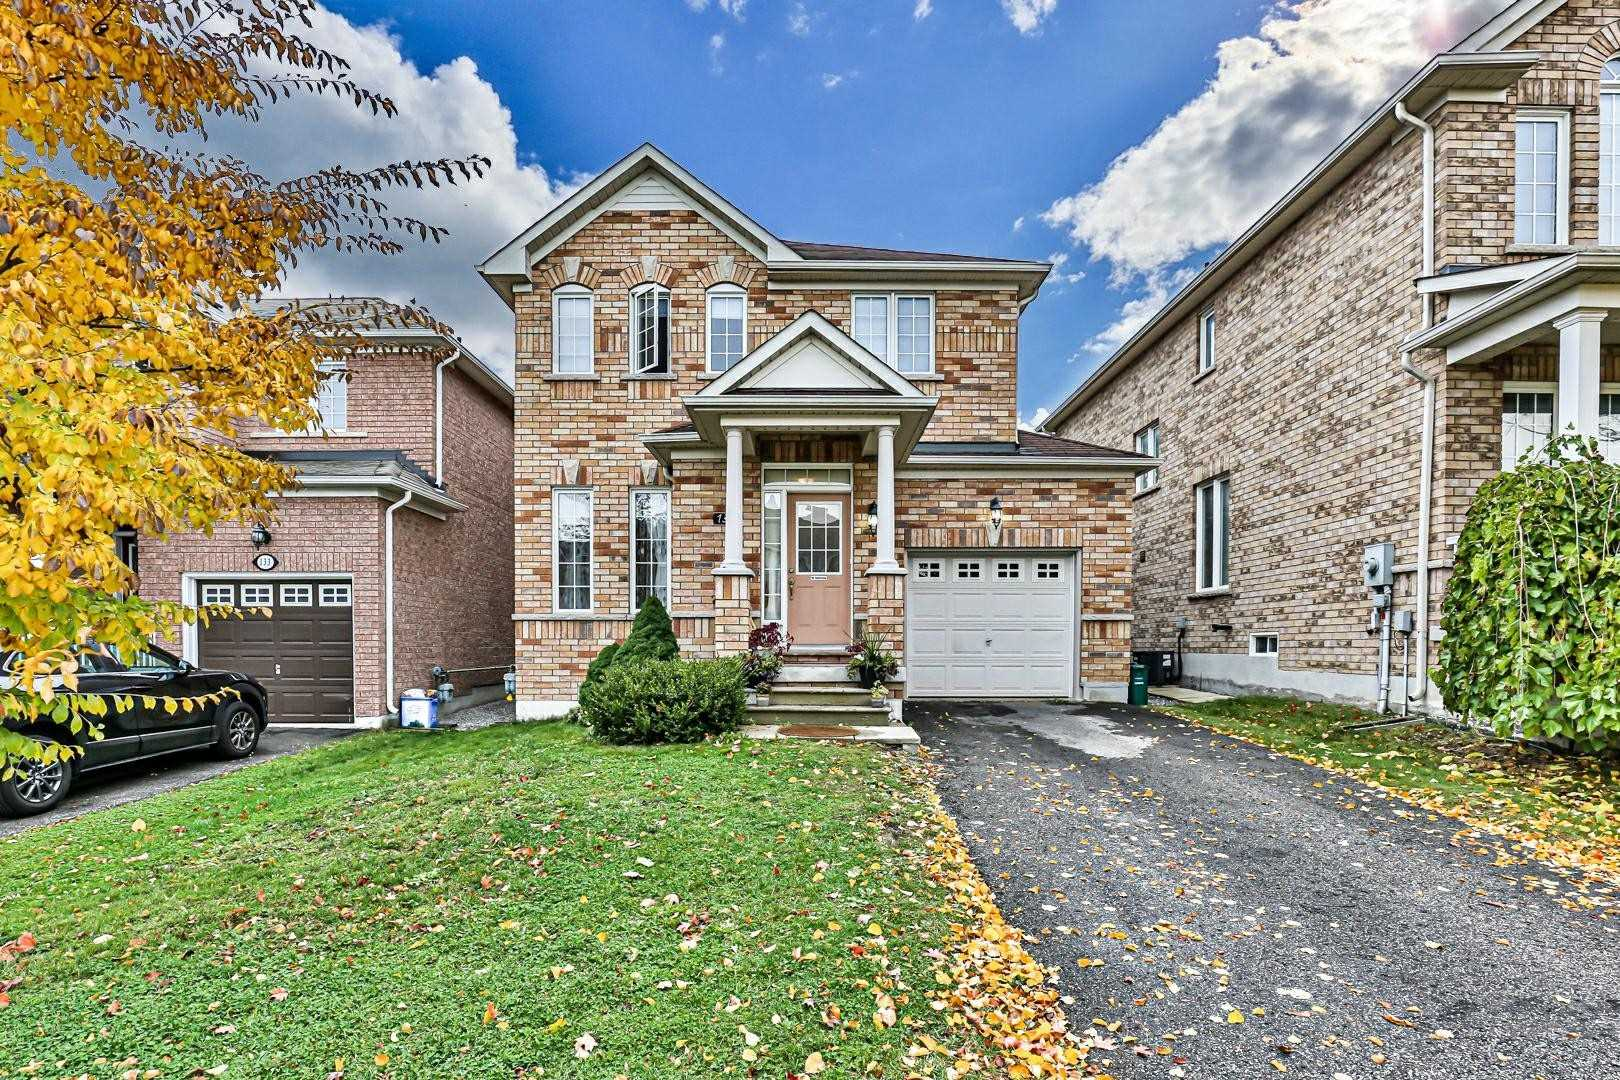 131 Beare Tr, Newmarket, Ontario L3X3B6, 3 Bedrooms Bedrooms, 6 Rooms Rooms,3 BathroomsBathrooms,Detached,For Sale,Beare,N4960353